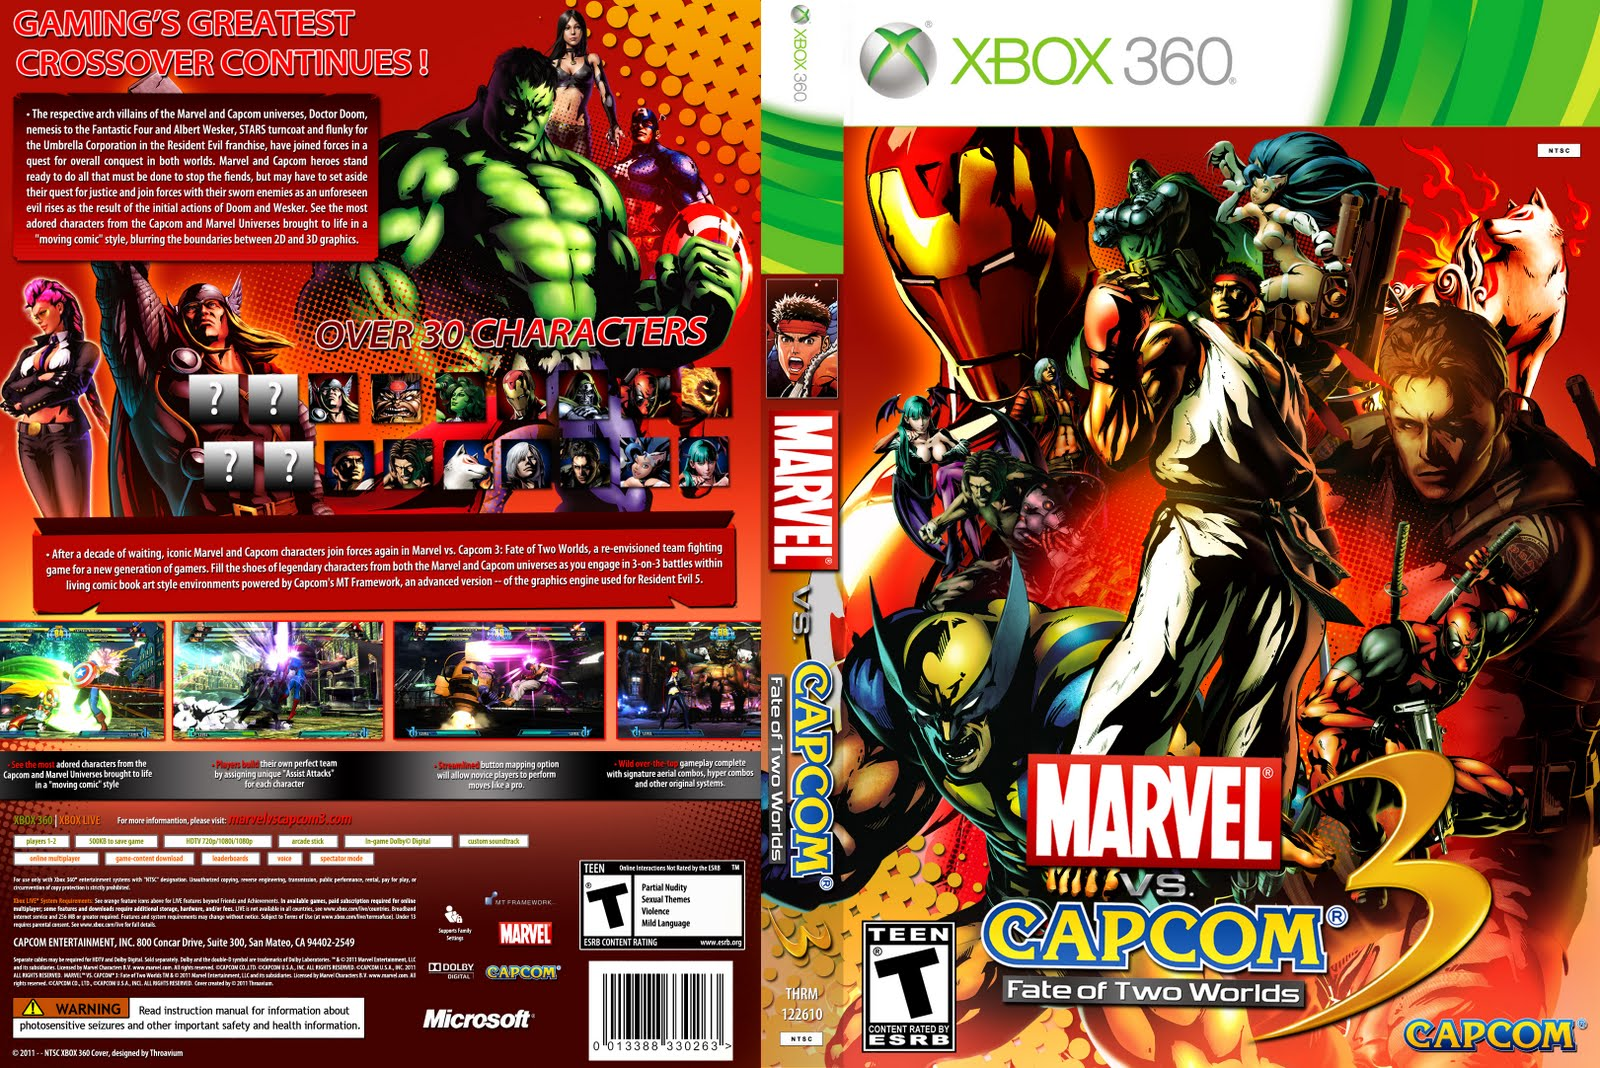 Games Covers: Marvel Vs Capcom 3 - Fate of Two Worlds